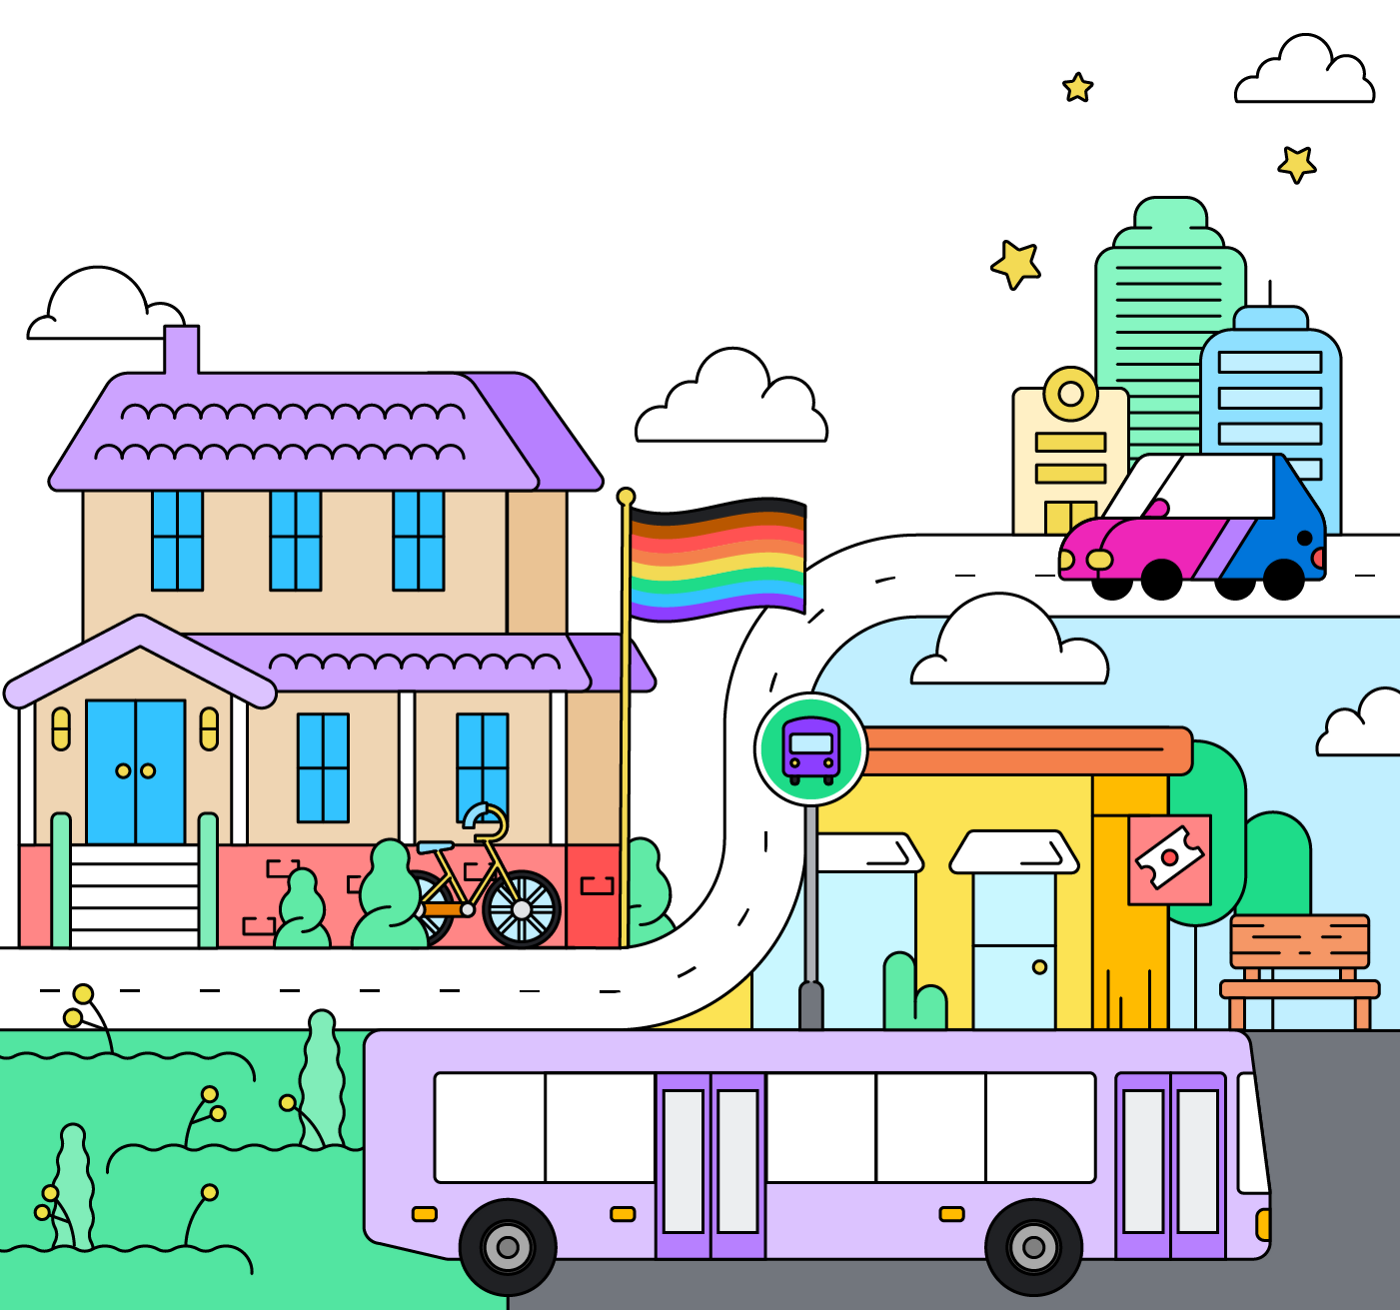 Big cities aren't the only places where queer communities can thrive, but access to transportation is key for small towns.